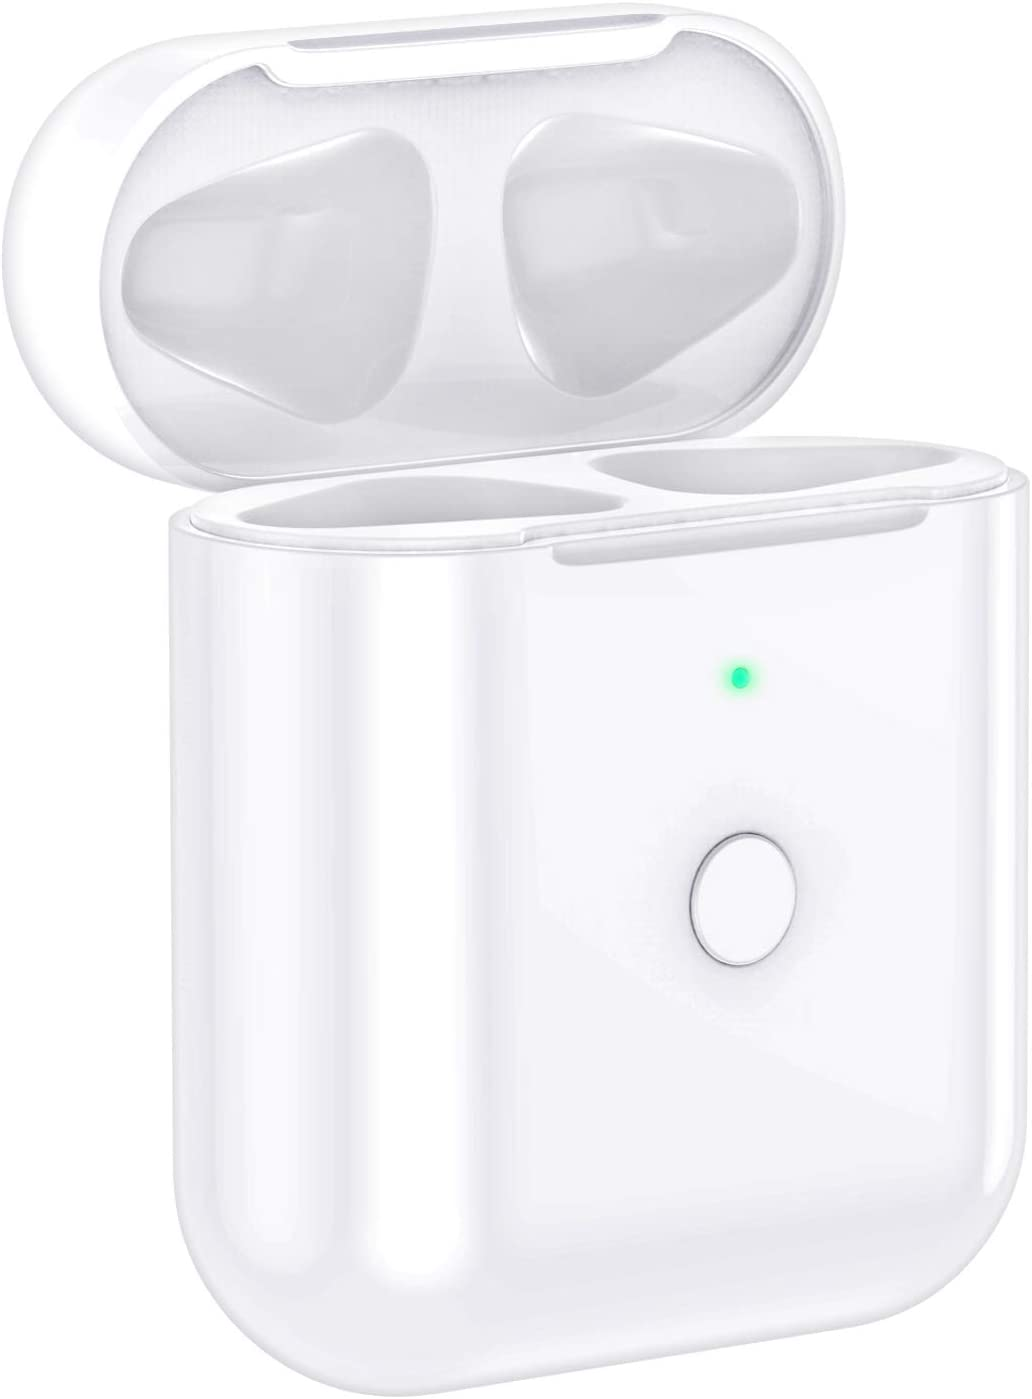 TBGHz A206 Wireless Airpods Charging Case Replacement Compatiple with for Airpod 2 1, Airpods Charger Case with Bluetooth Pairing Sync Button, White, 5cm